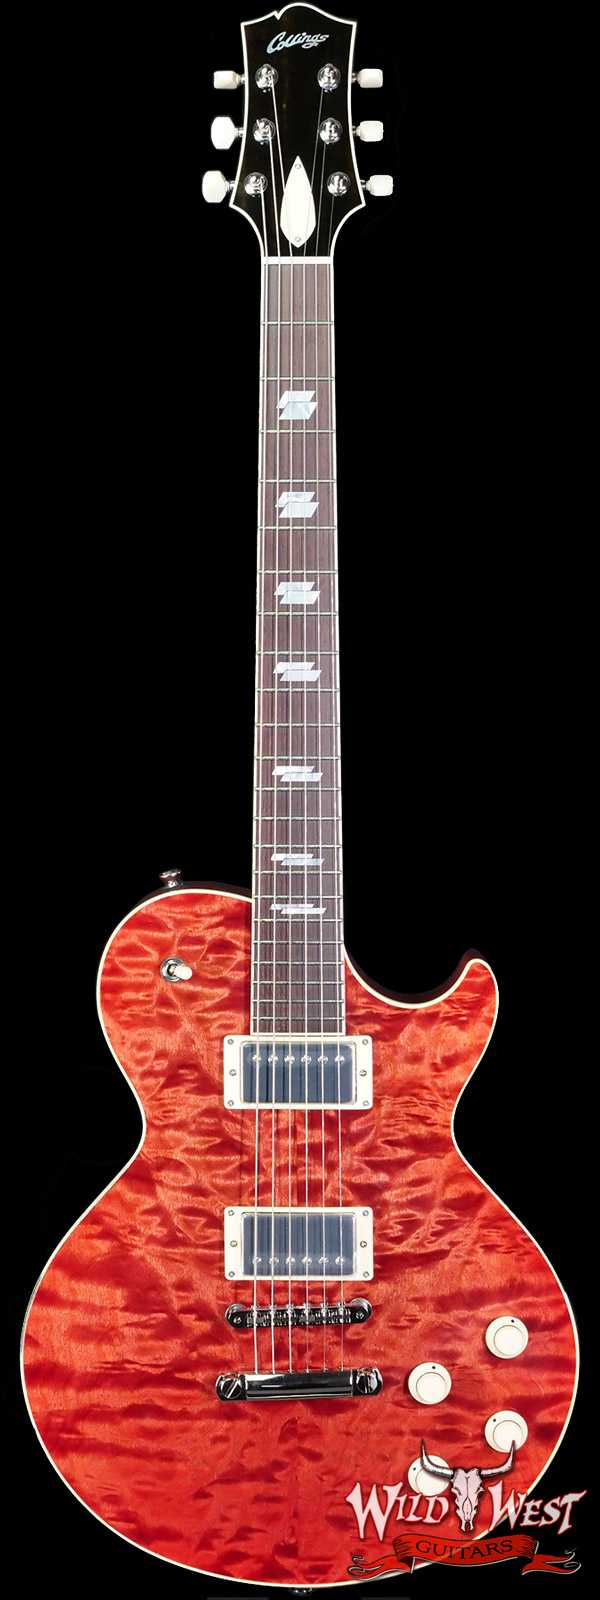 Collings CL Series City Limits Deluxe Premium Quilt Top Faded Cherry